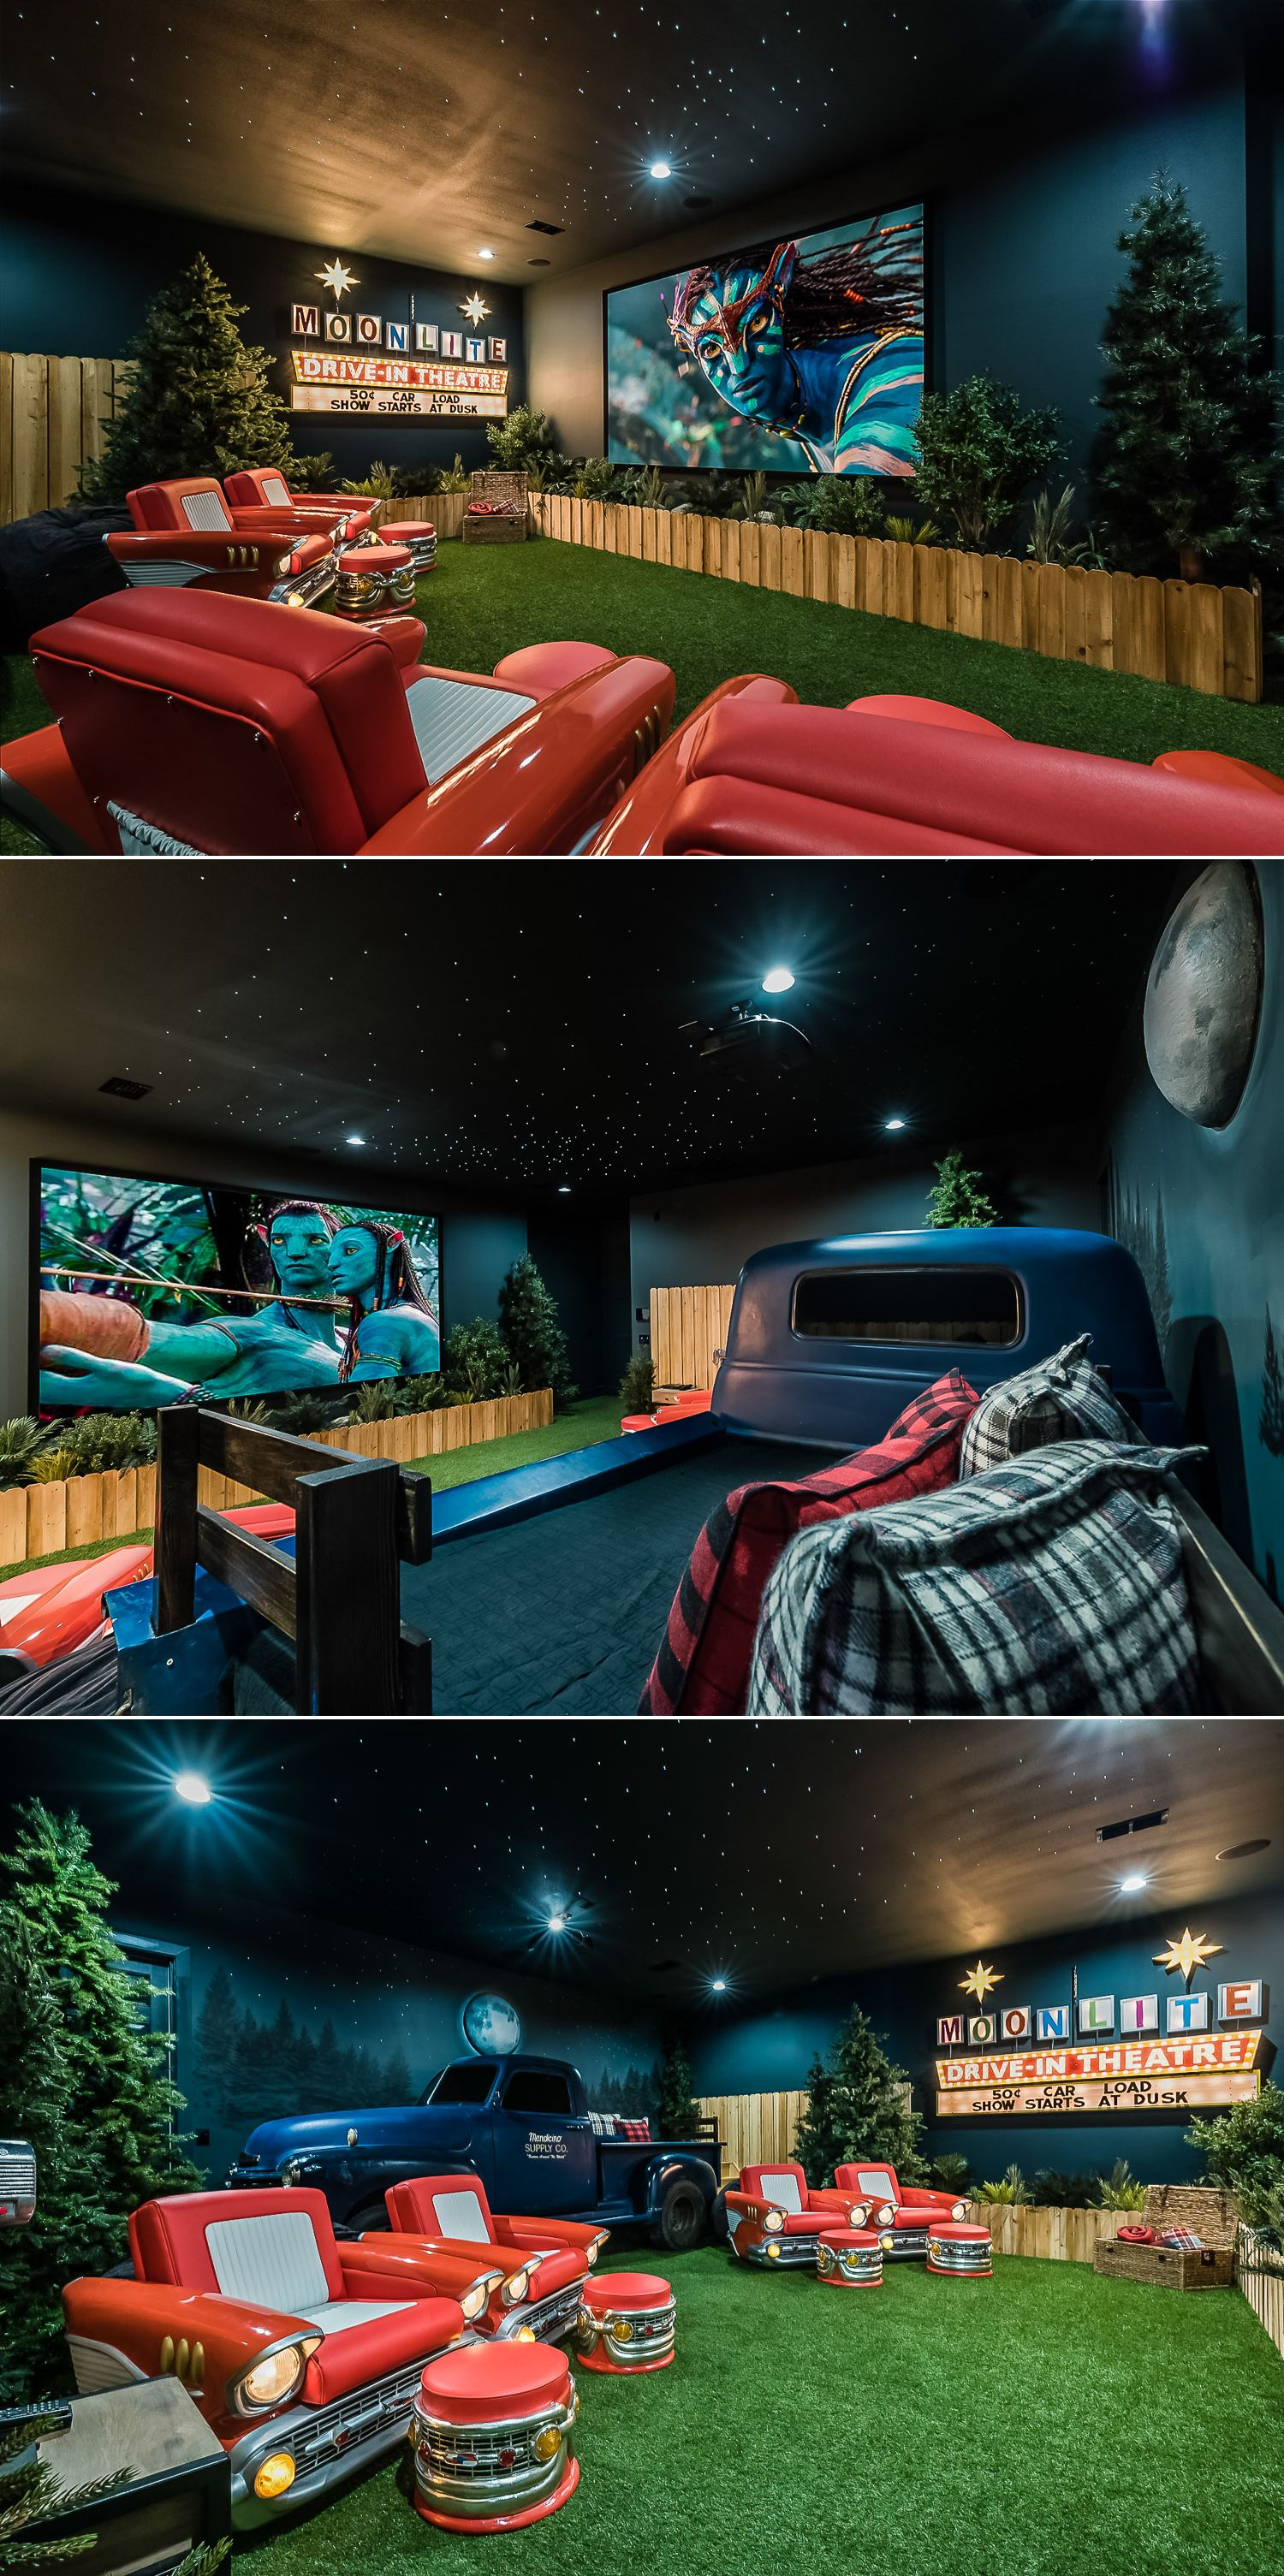 Awesome Drive In Themed Home Theater In An Orlando Vacation Villa Check Out Those Cool Seats Home Theater Design Home Theater Seating At Home Movie Theater